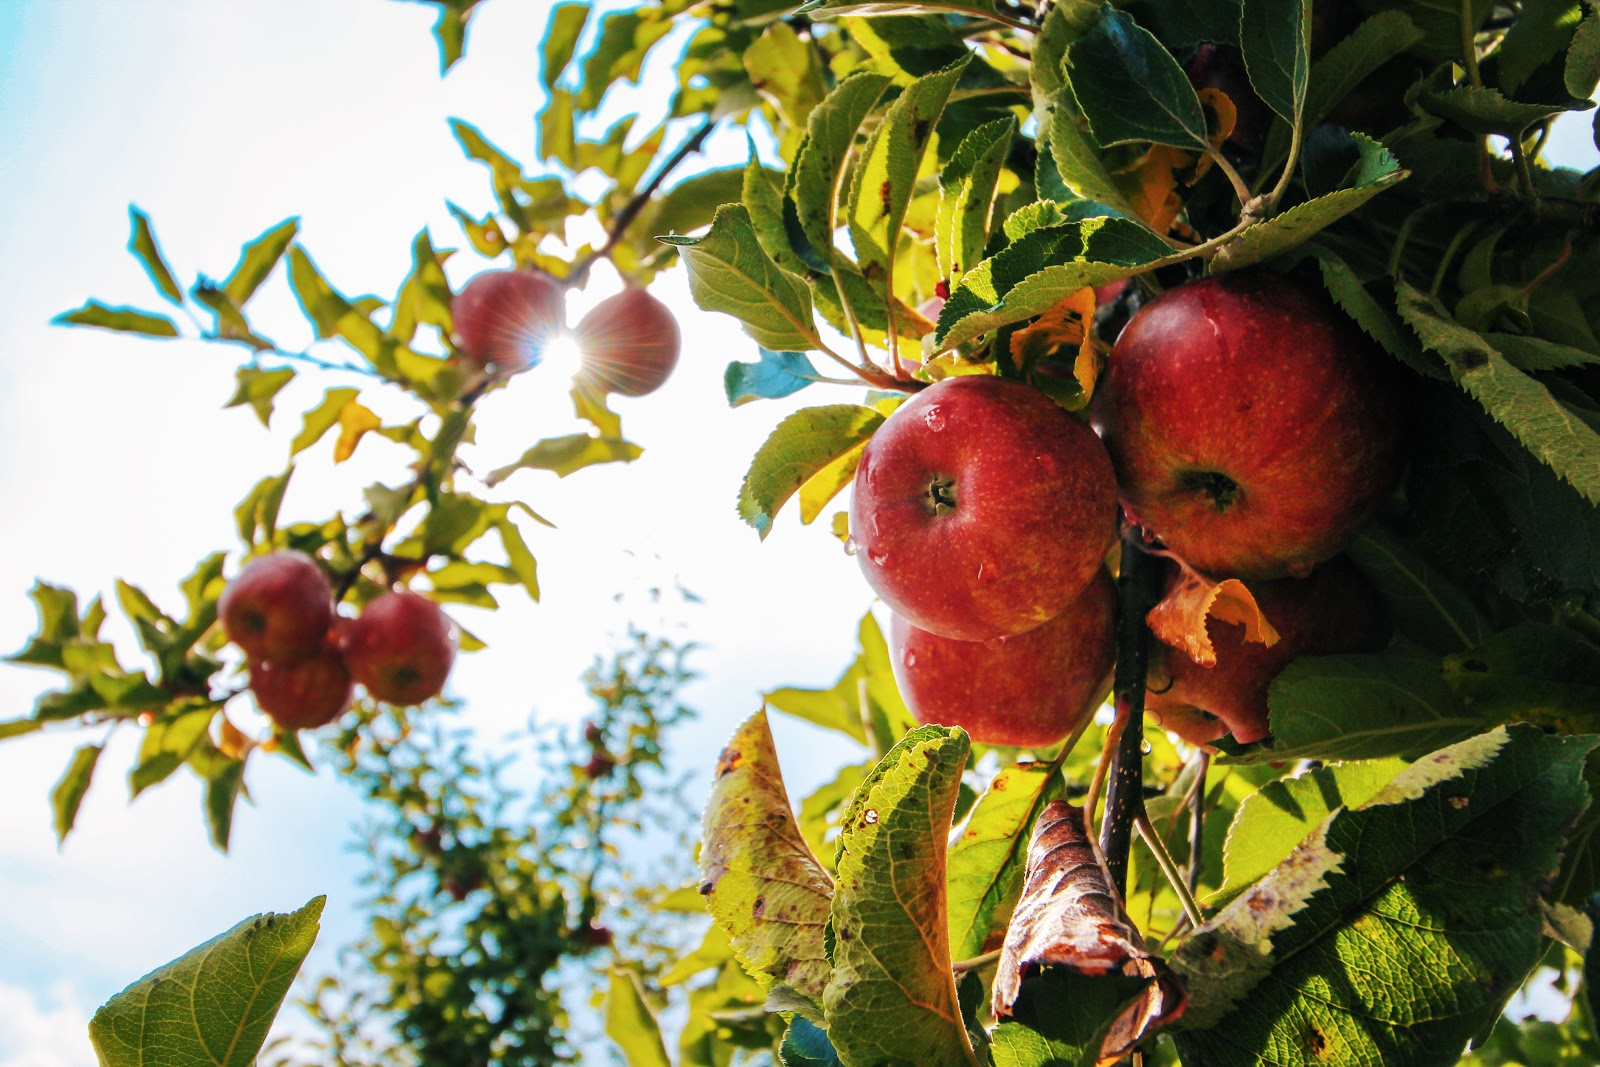 Fruit trees need fertilizer to grow colorful and flavorful fruit.